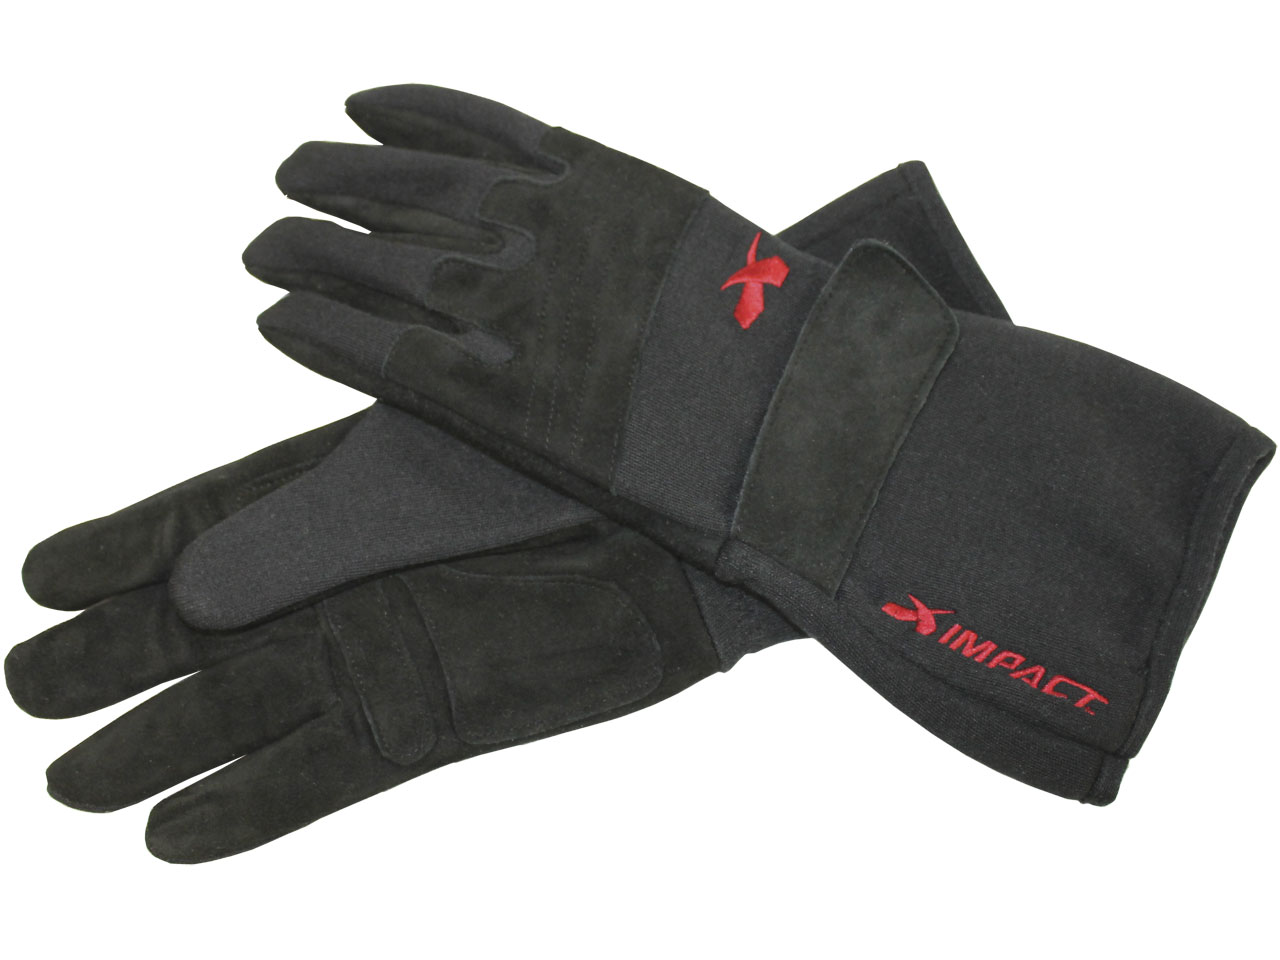 Picture of Impact G4 Race Gloves - Small ON SALE